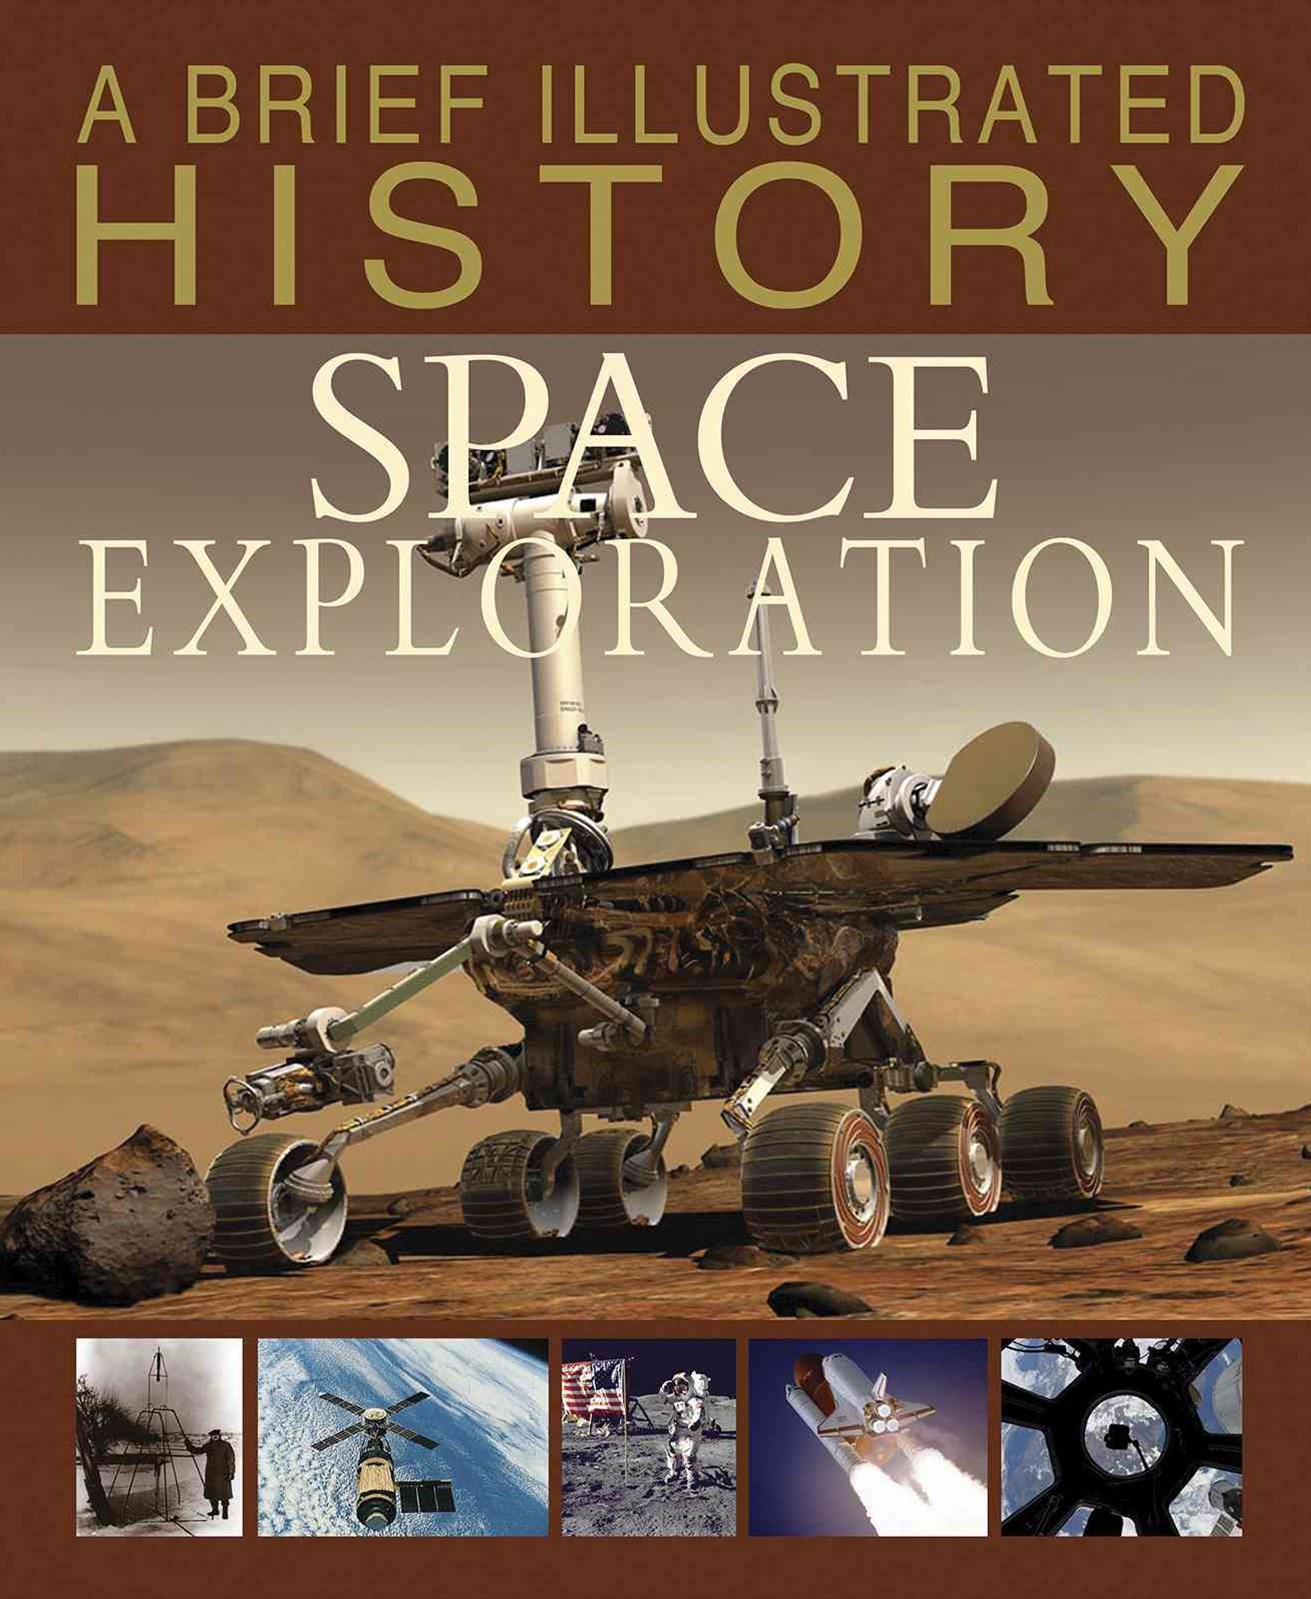 A Brief Illustrated History: Space Exploration